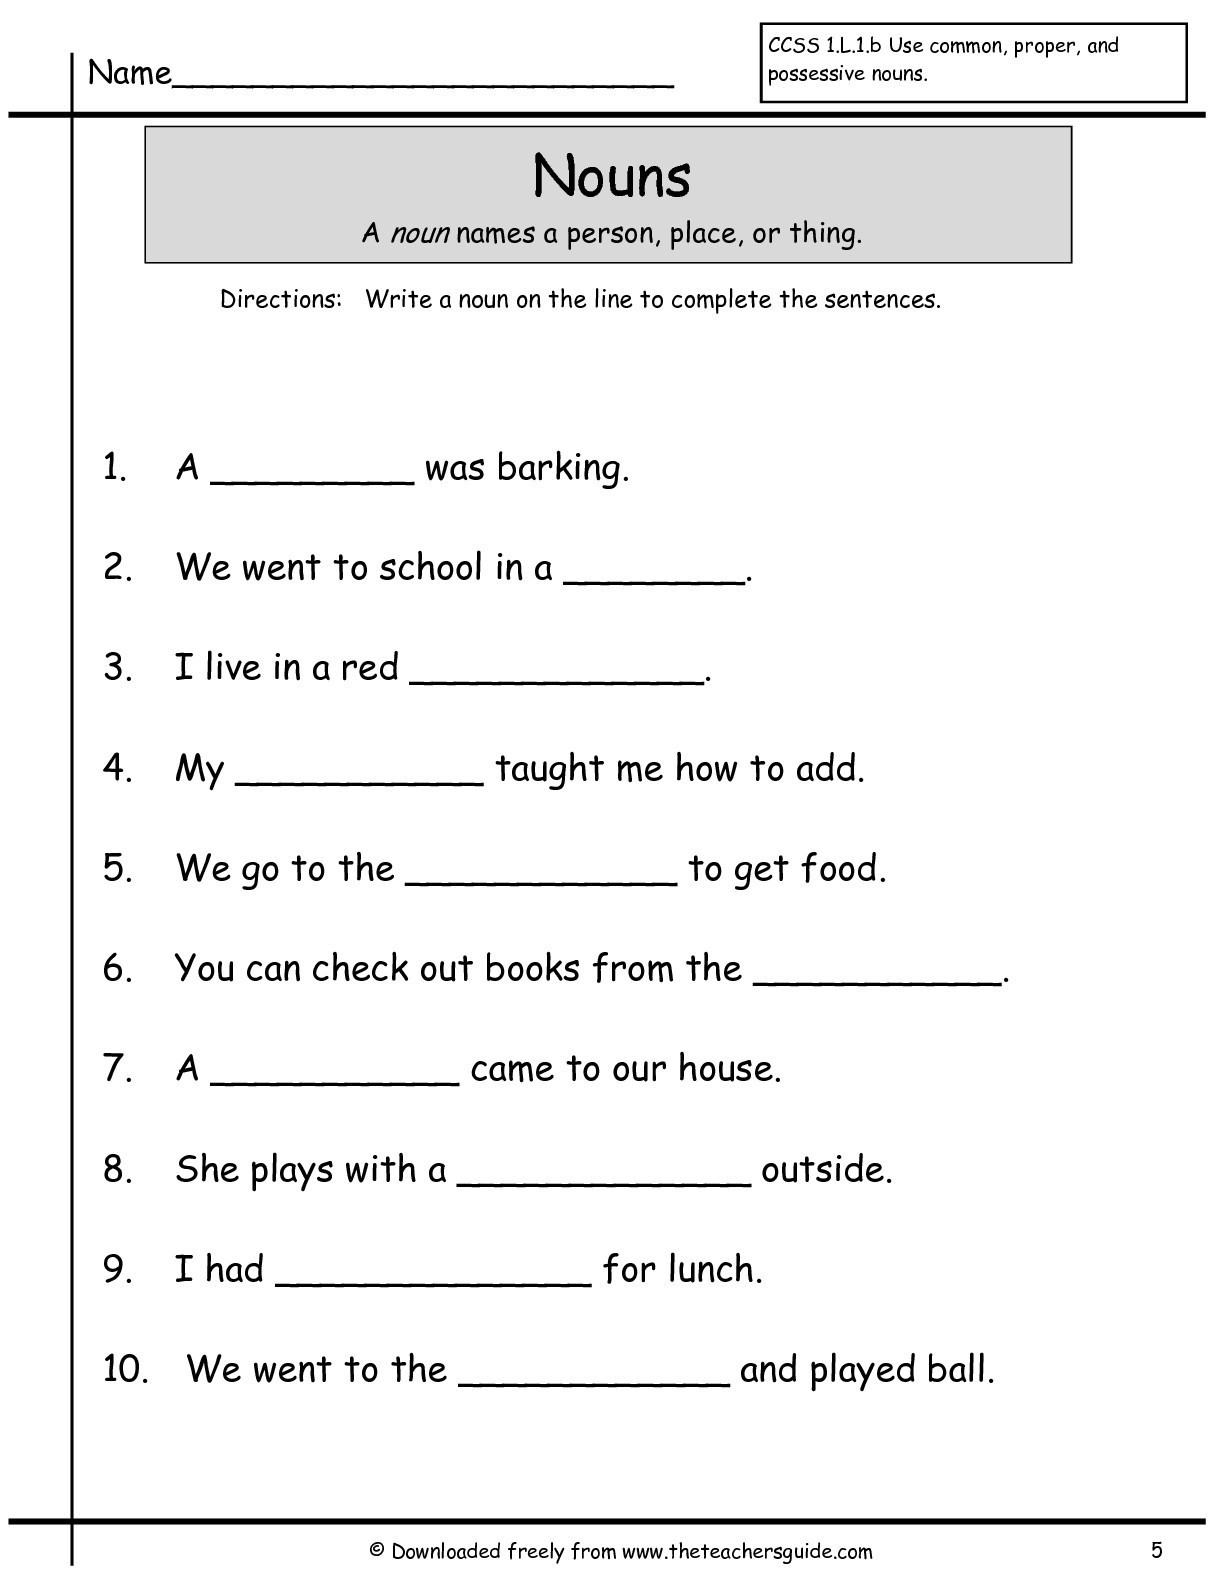 7th Grade social Studies Worksheets Globalpublicpolicywatch Page 202 Italian Culture Worksheets